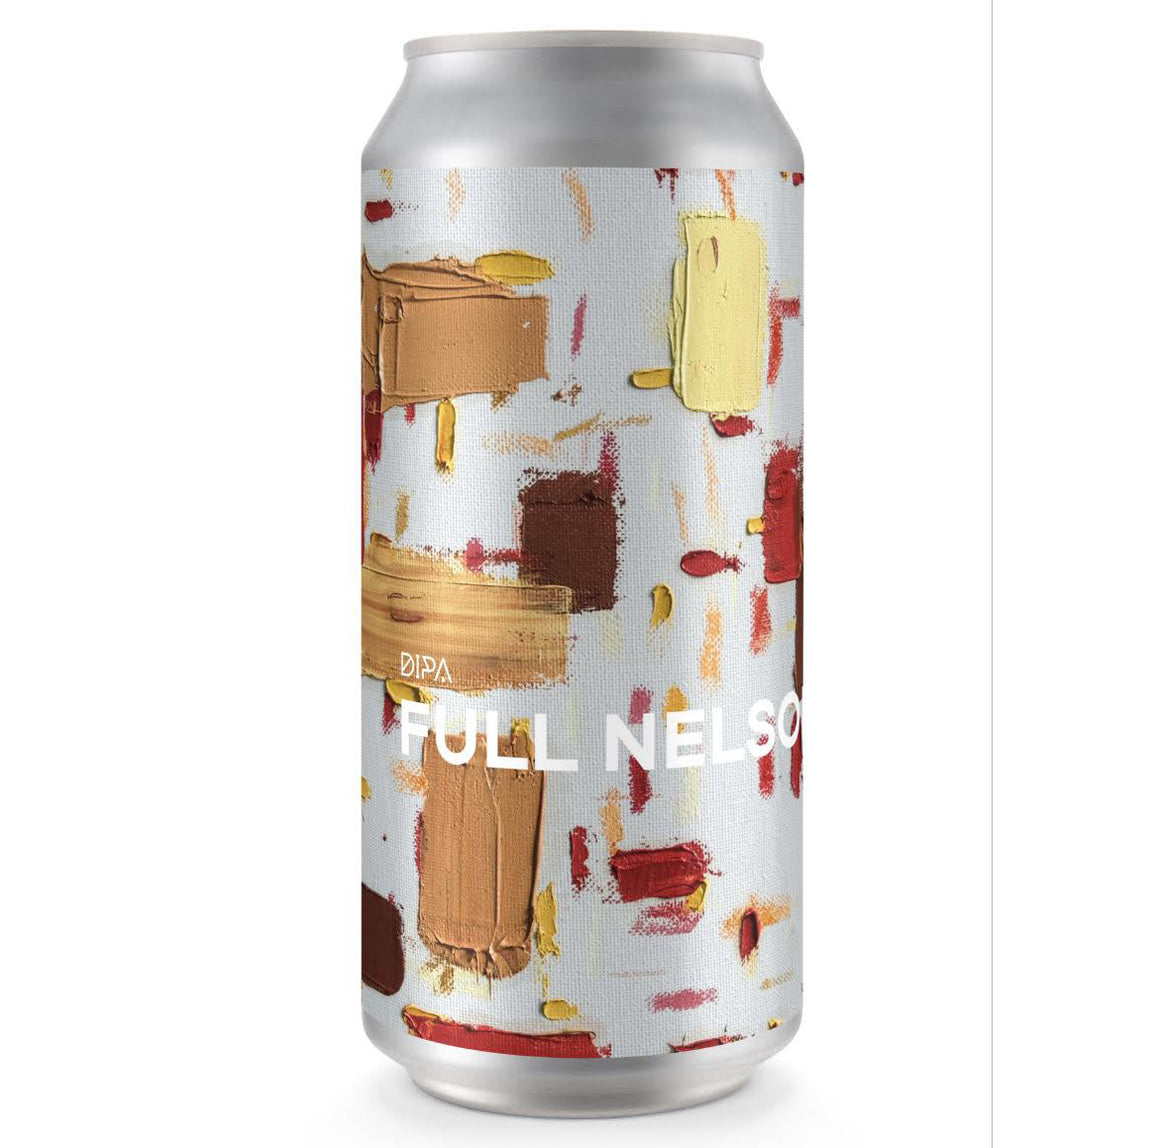 Boundary - Full Nelson - IPA - 440ml Can